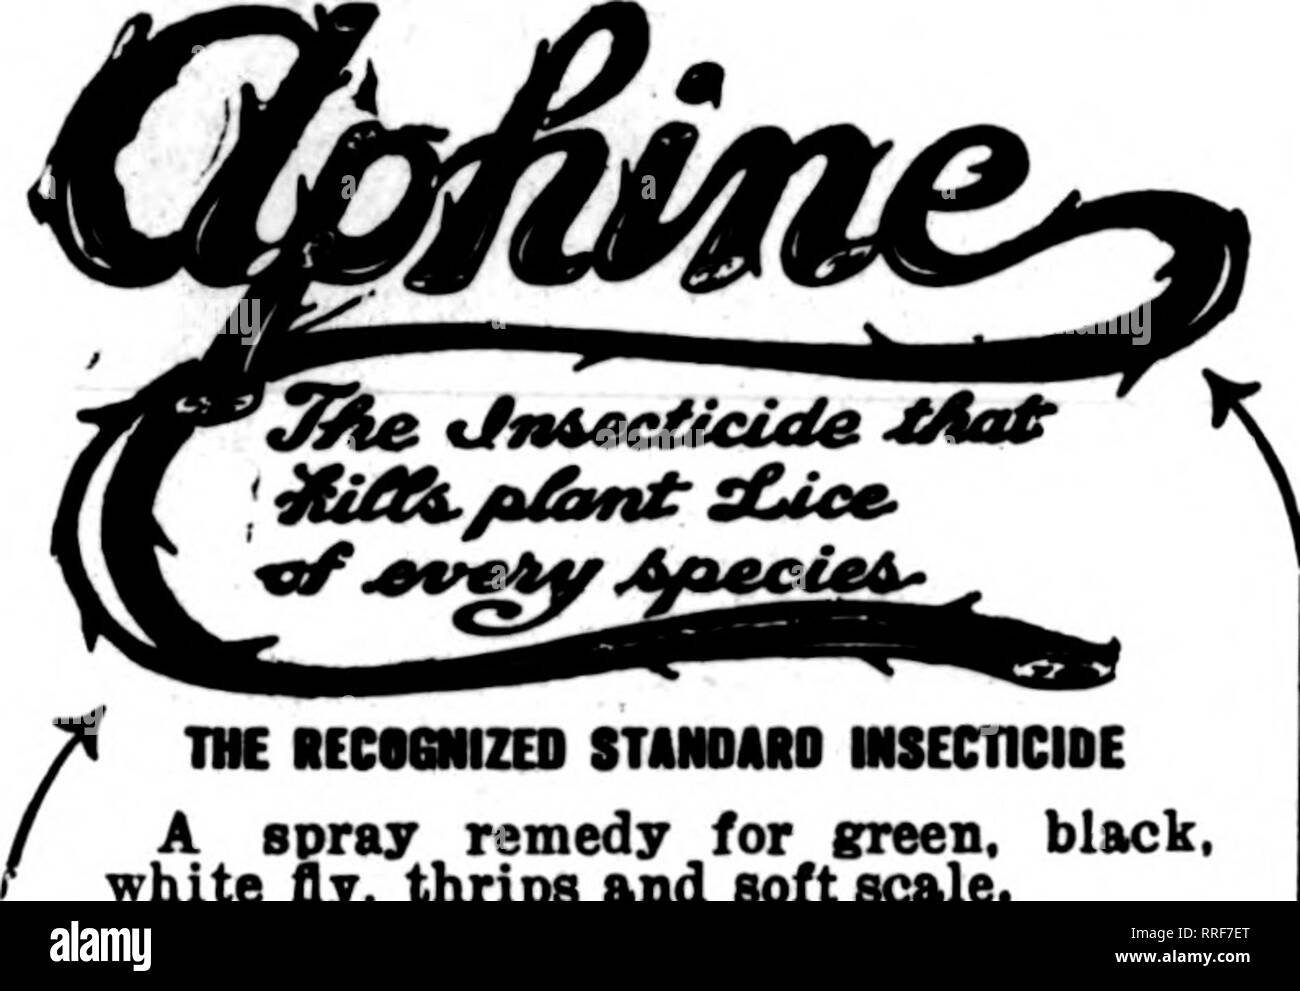 . Florists' review [microform]. Floriculture. April 7, 1921 The Florists^ Review 131 zenke'8 Liquid Fungicide 1 Gallon Makes 50 Gallons of SprlAying Solution A reliable j Leaf Spot, Scab, Black and Brown Rot,) $3.00 remedy for ) Leaf Rust, Mildew^, and most Fungoid Troubles j Per Gal. ! ORDER COUPON Use it and save $2.00 SPECIAL TRIAL OFFER Excel! Laboratories 4535 Ravenswood Ave. The Excei.l Laboratories, Chicagv, 111. Gentlemen:—Please send us five gallons of your Liquid Fungicide. This is the best we have yet found for Mildew. Meyer & Dramm Co., Rose Growers, Elmhurst, 111. We also manu - Stock Image